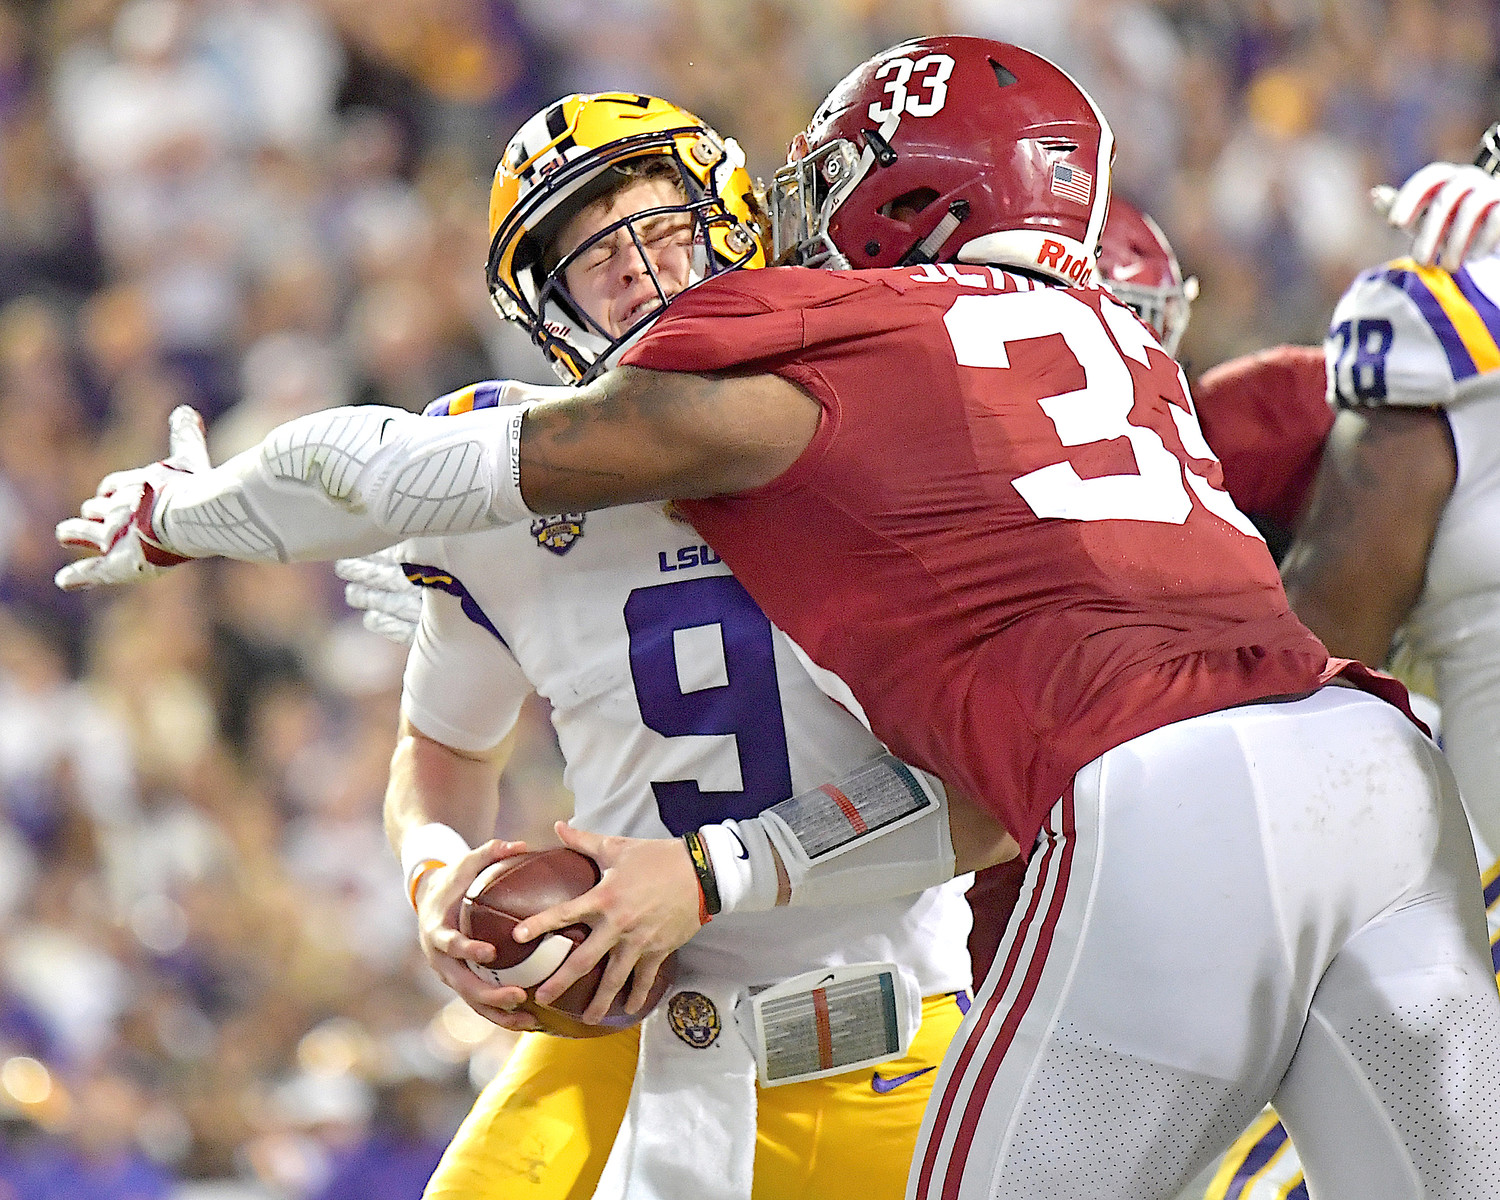 LSU Tigers quarterback Joe Burrow (9) gets sacked at the one-yard line by Alabama Crimson Tide linebacker Anfernee Jennings (33) in the second quarter of an NCAA football game Saturday, November 3, 2018, at Tiger Stadium in Baton Rouge, La.